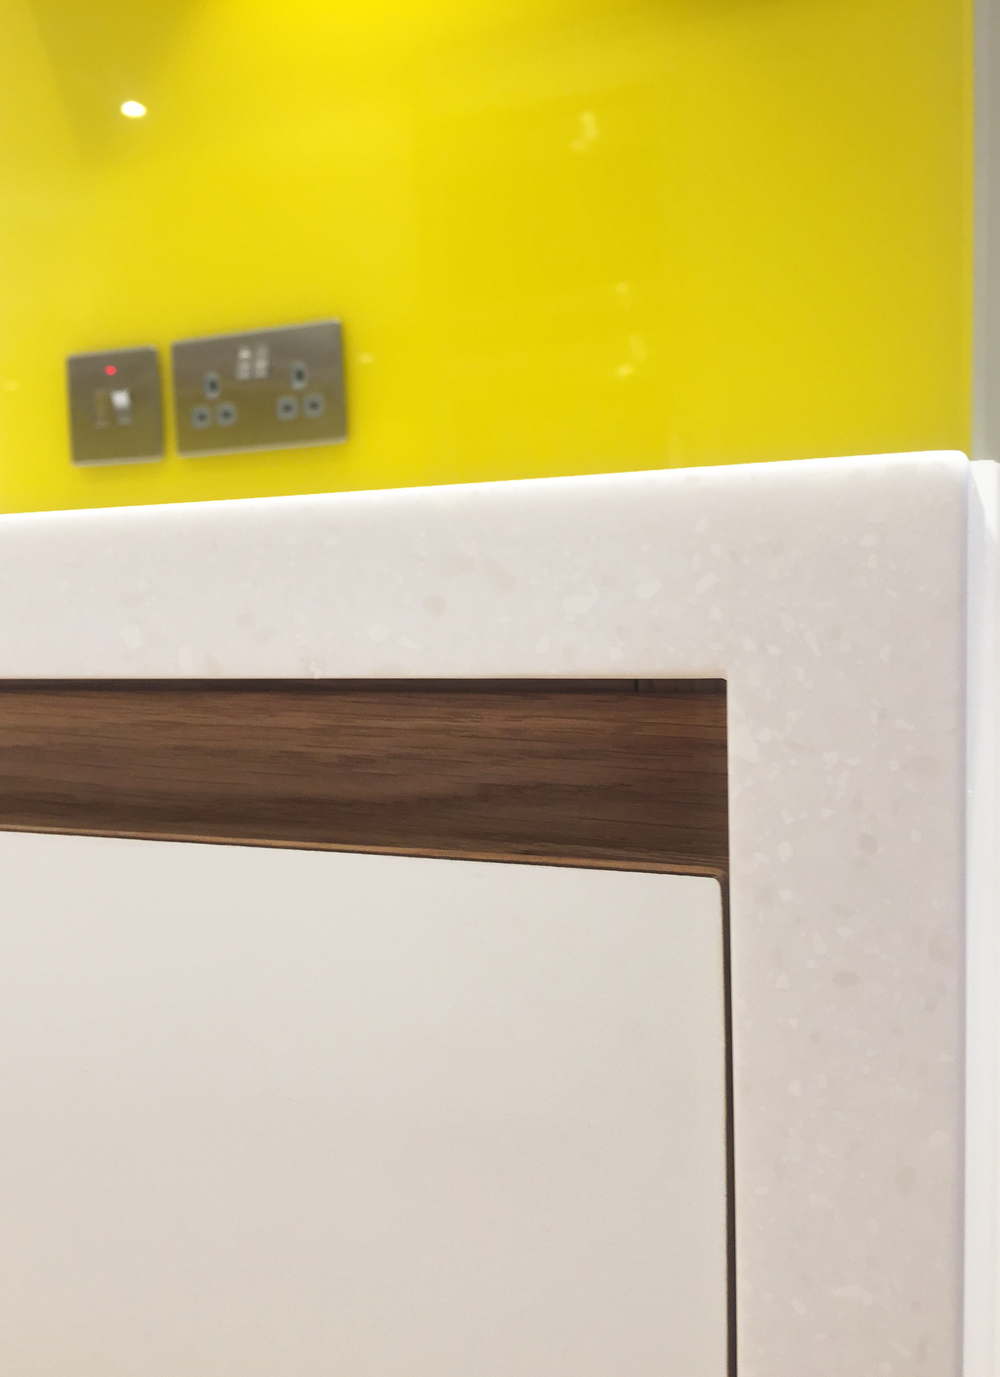 Square-One-Design-kitchen-oak-Antartica-corian-Formica-glass-yellow-1.jpg